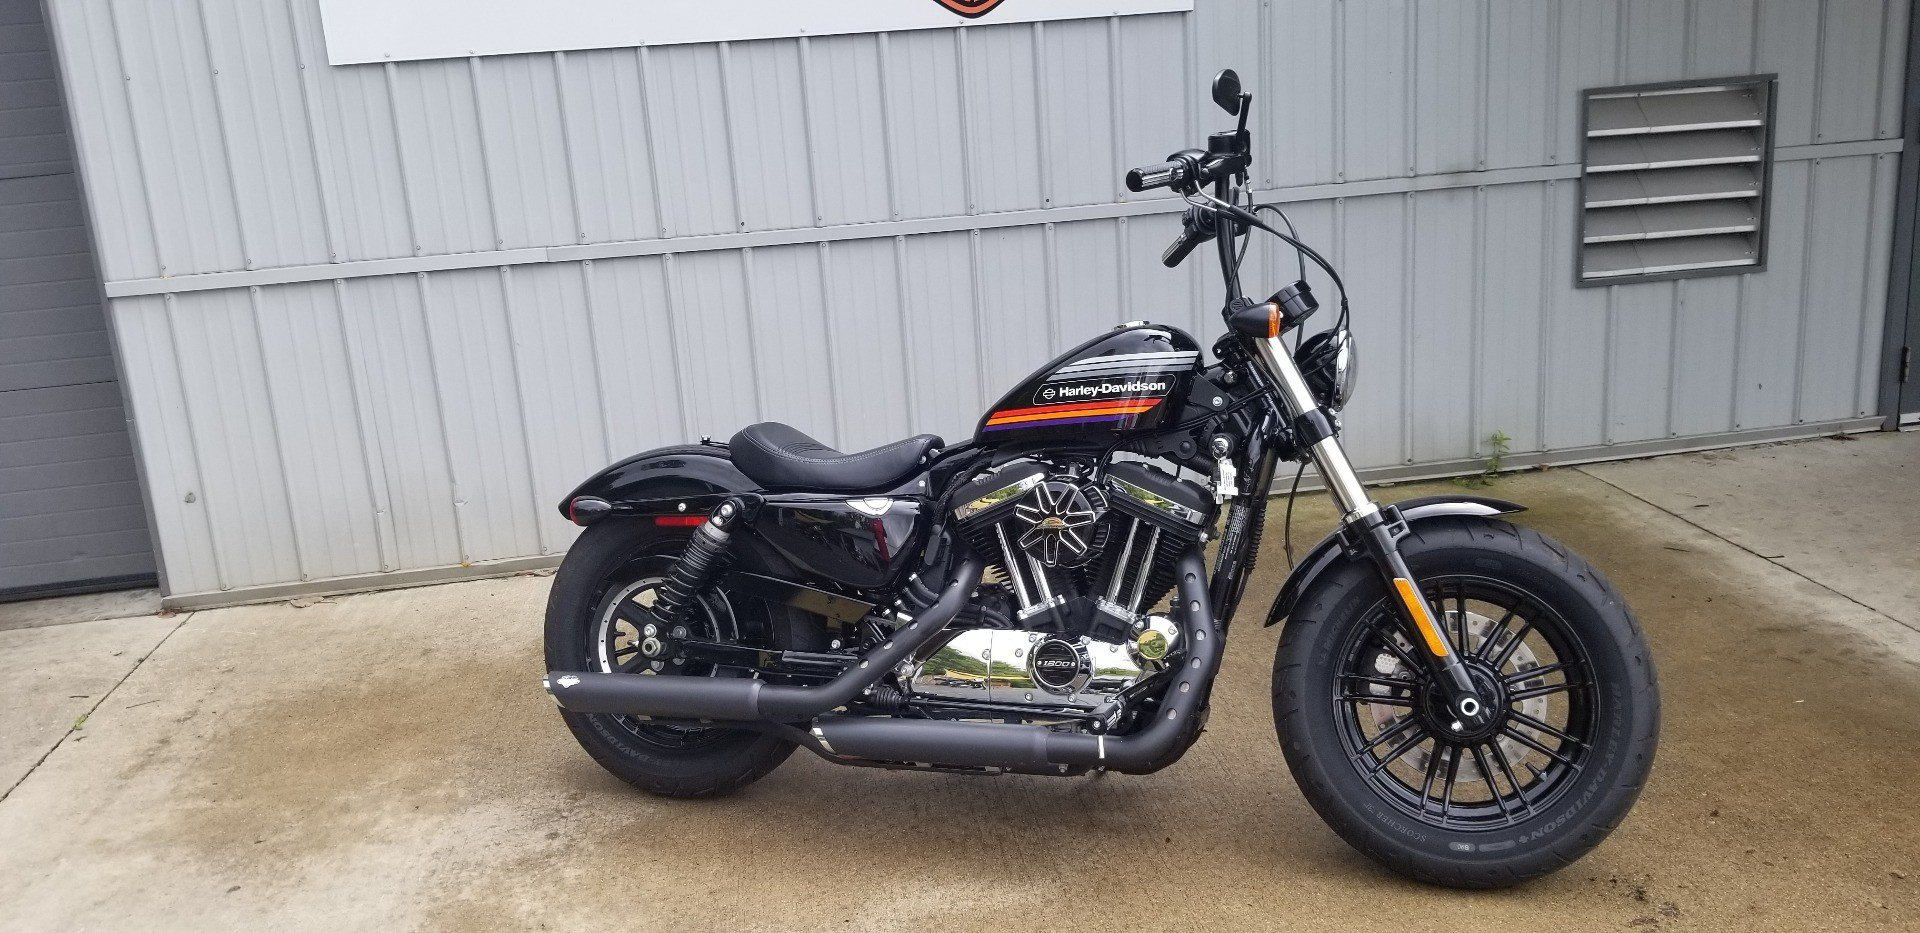 2018 Harley-Davidson Forty-Eight Special for sale 47411